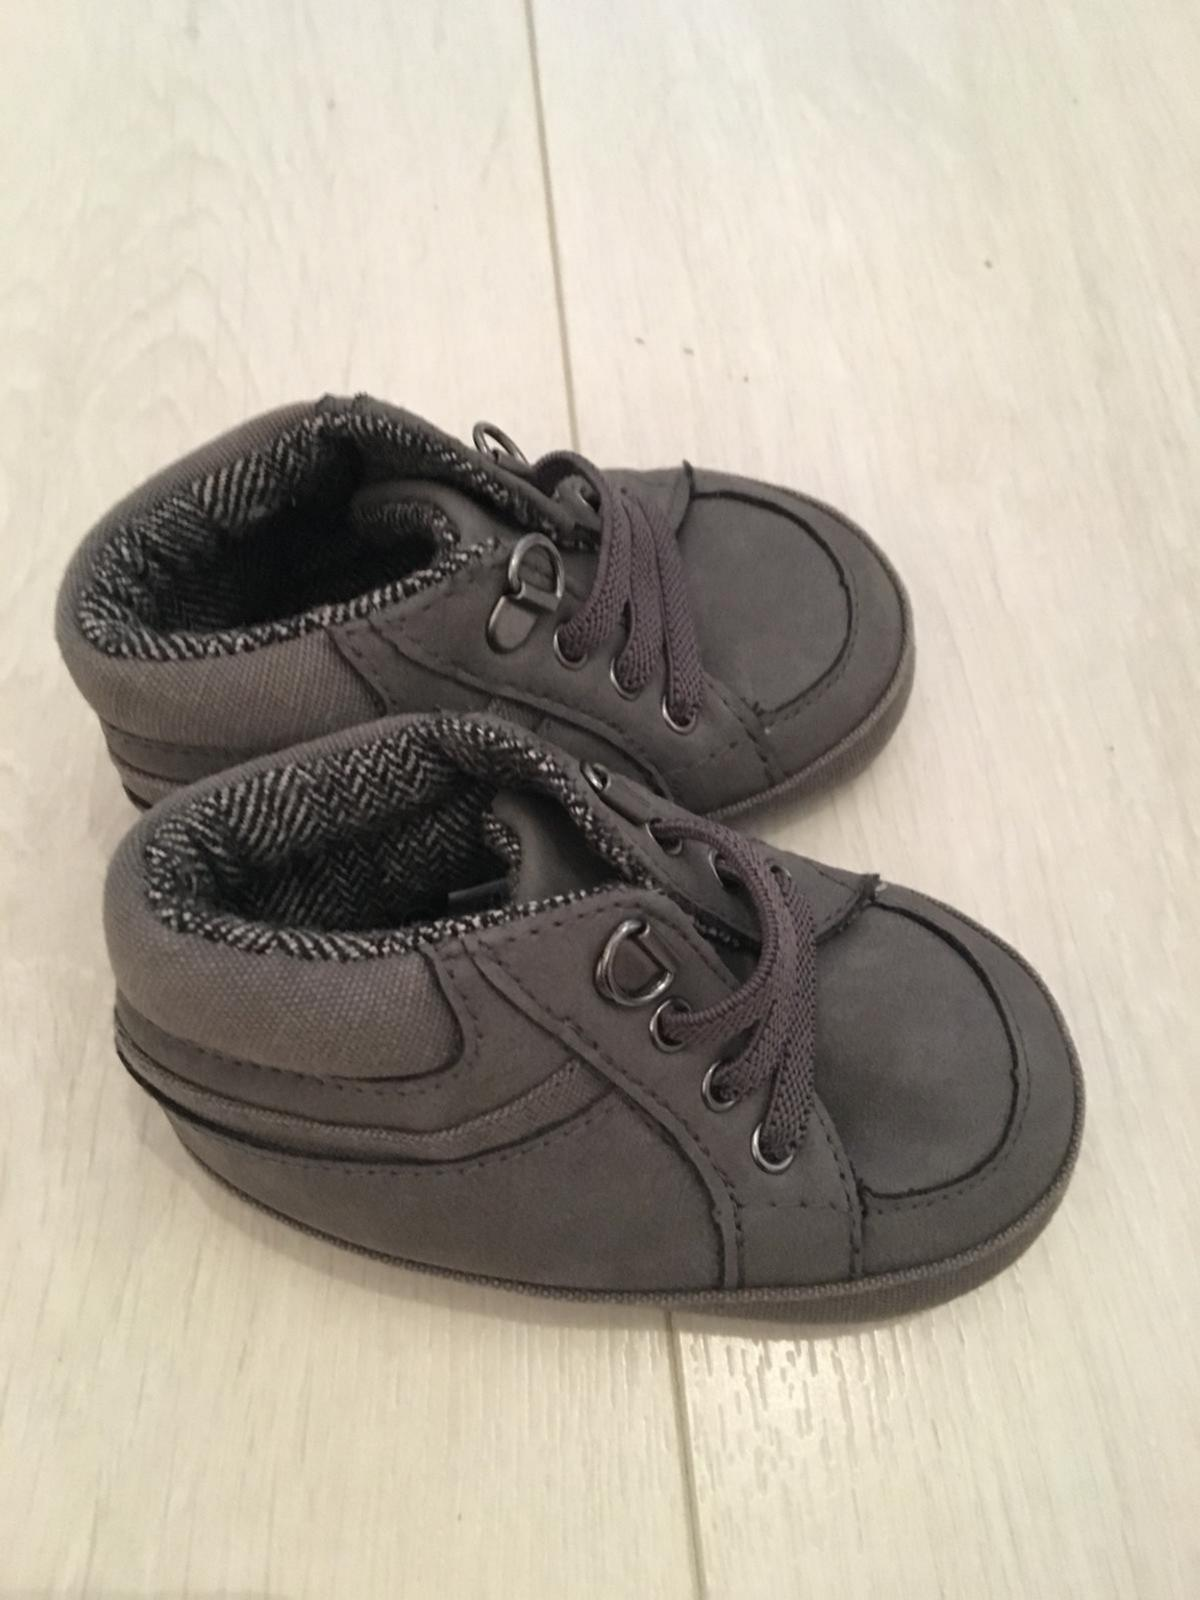 Never worn baby boy Mothercare grey shoes in size UK 1